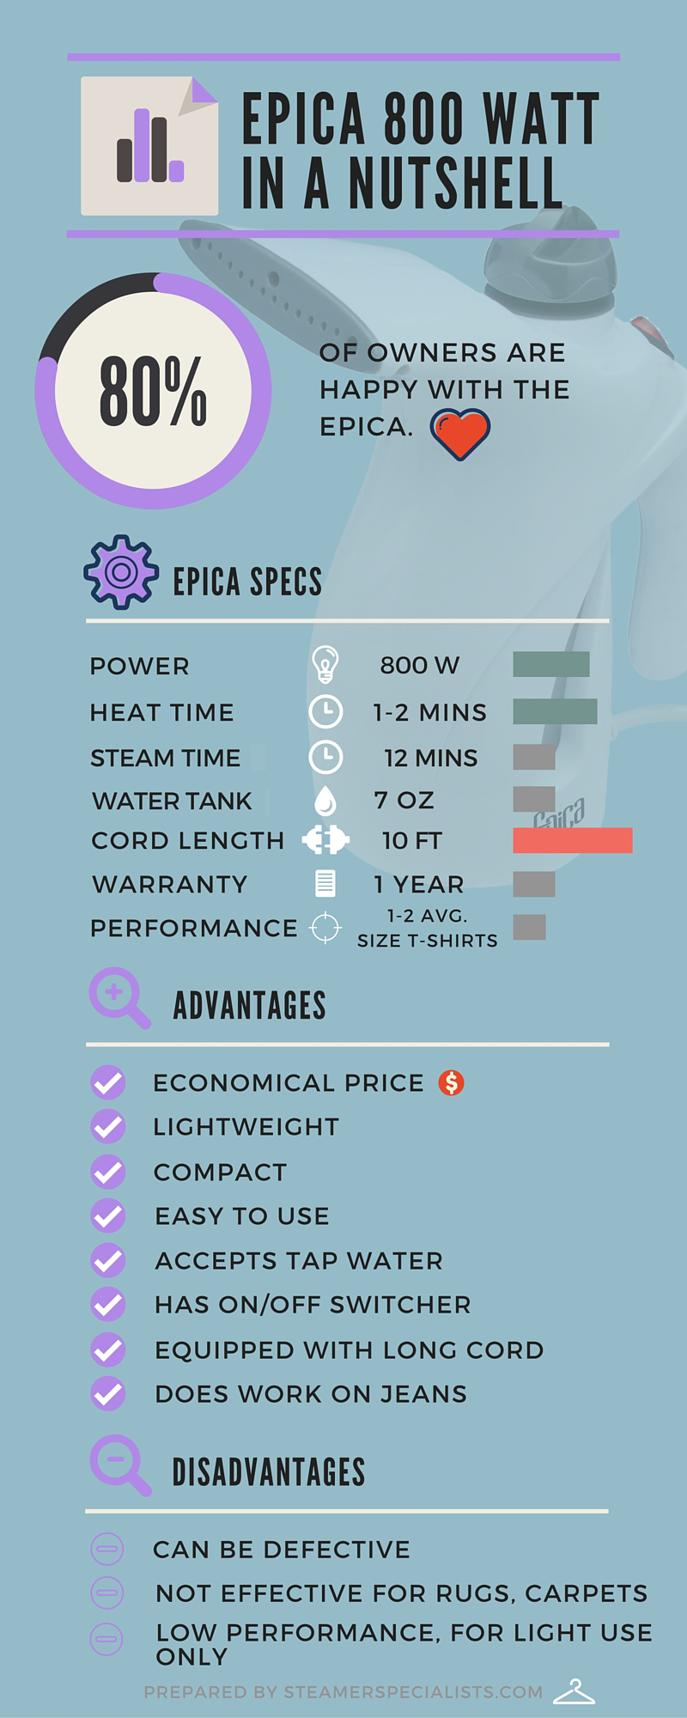 Epica 800 Watt Handheld Fabric Steamer Review Infographic